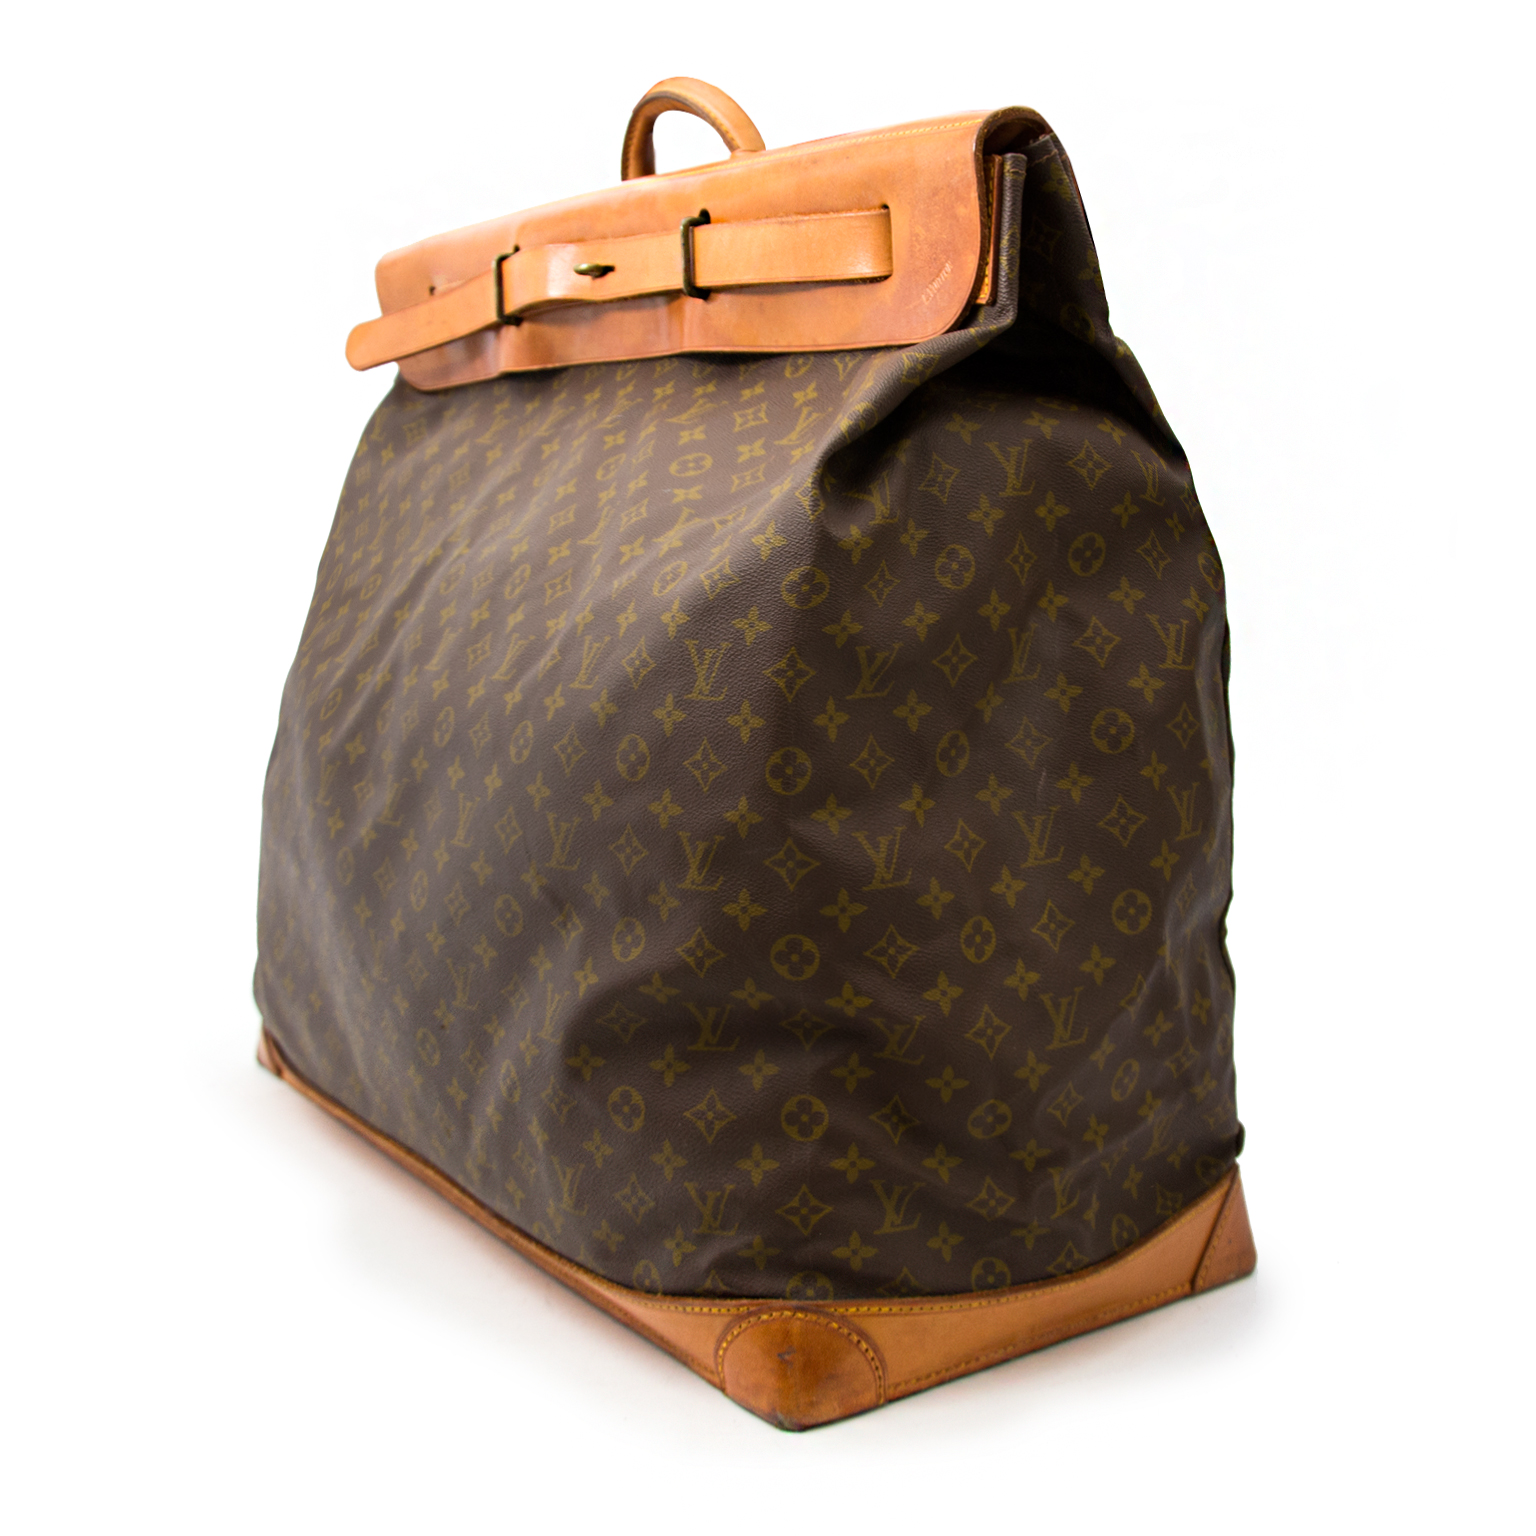 Real secondhand Louis Vuitton Steamerbag on www.labellov.com at the best price and without risk